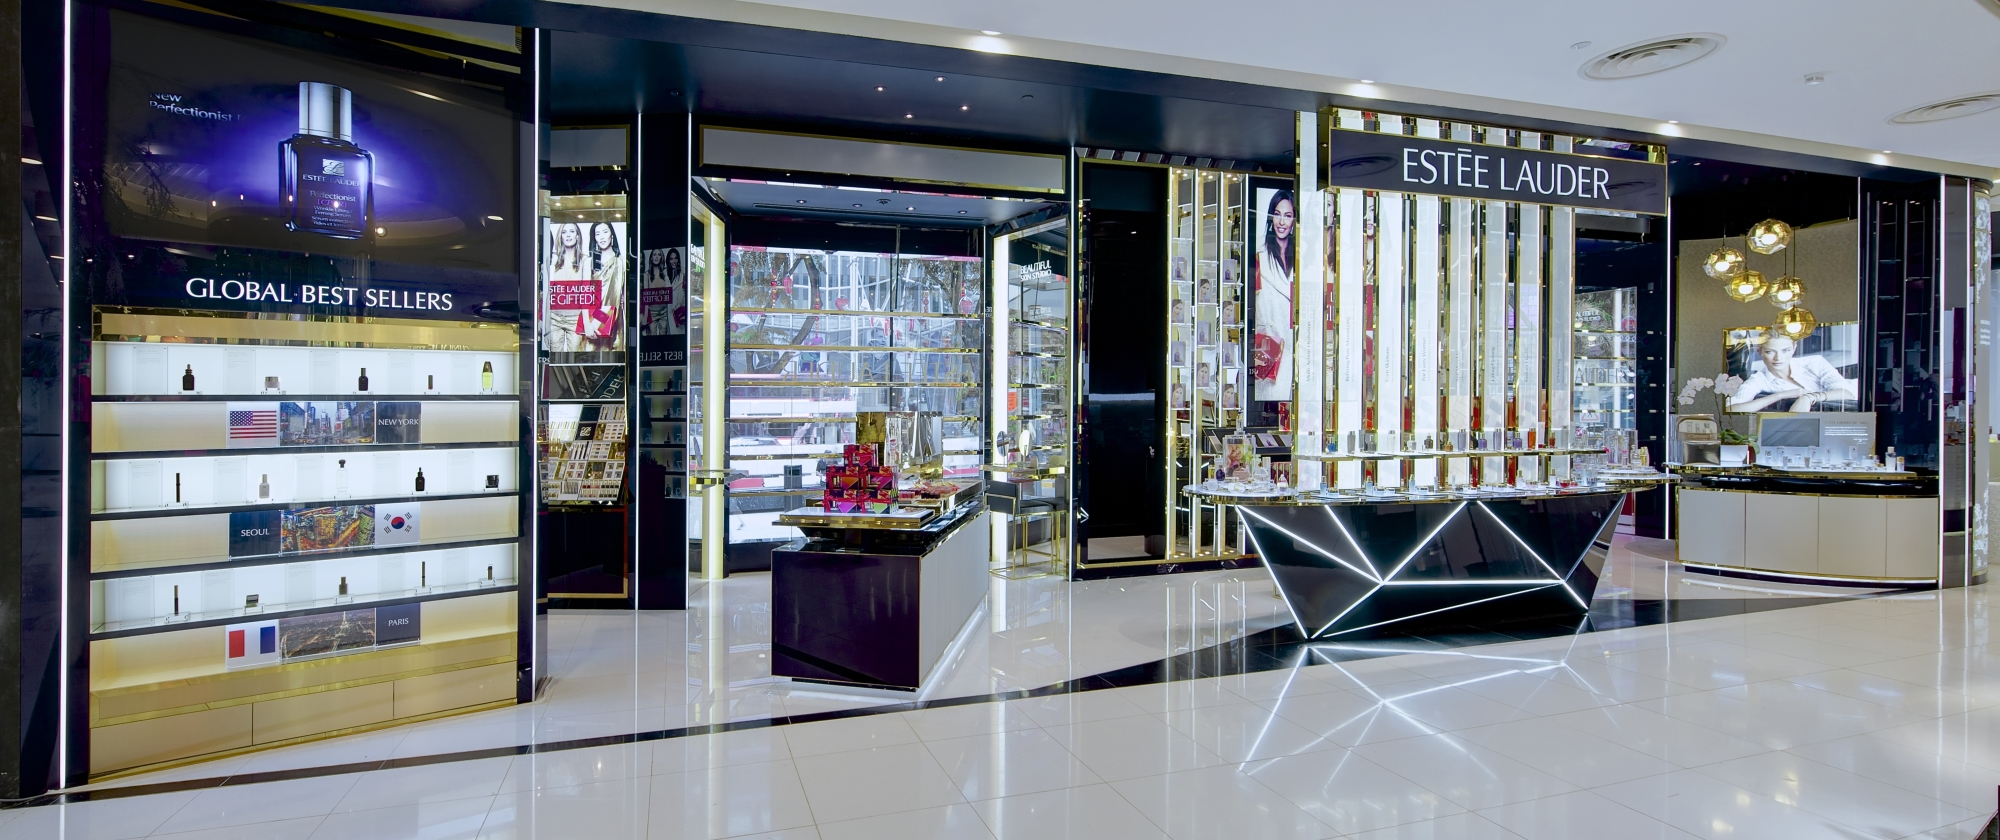 Estée Lauder Flagship Boutique at Tangs Orchard